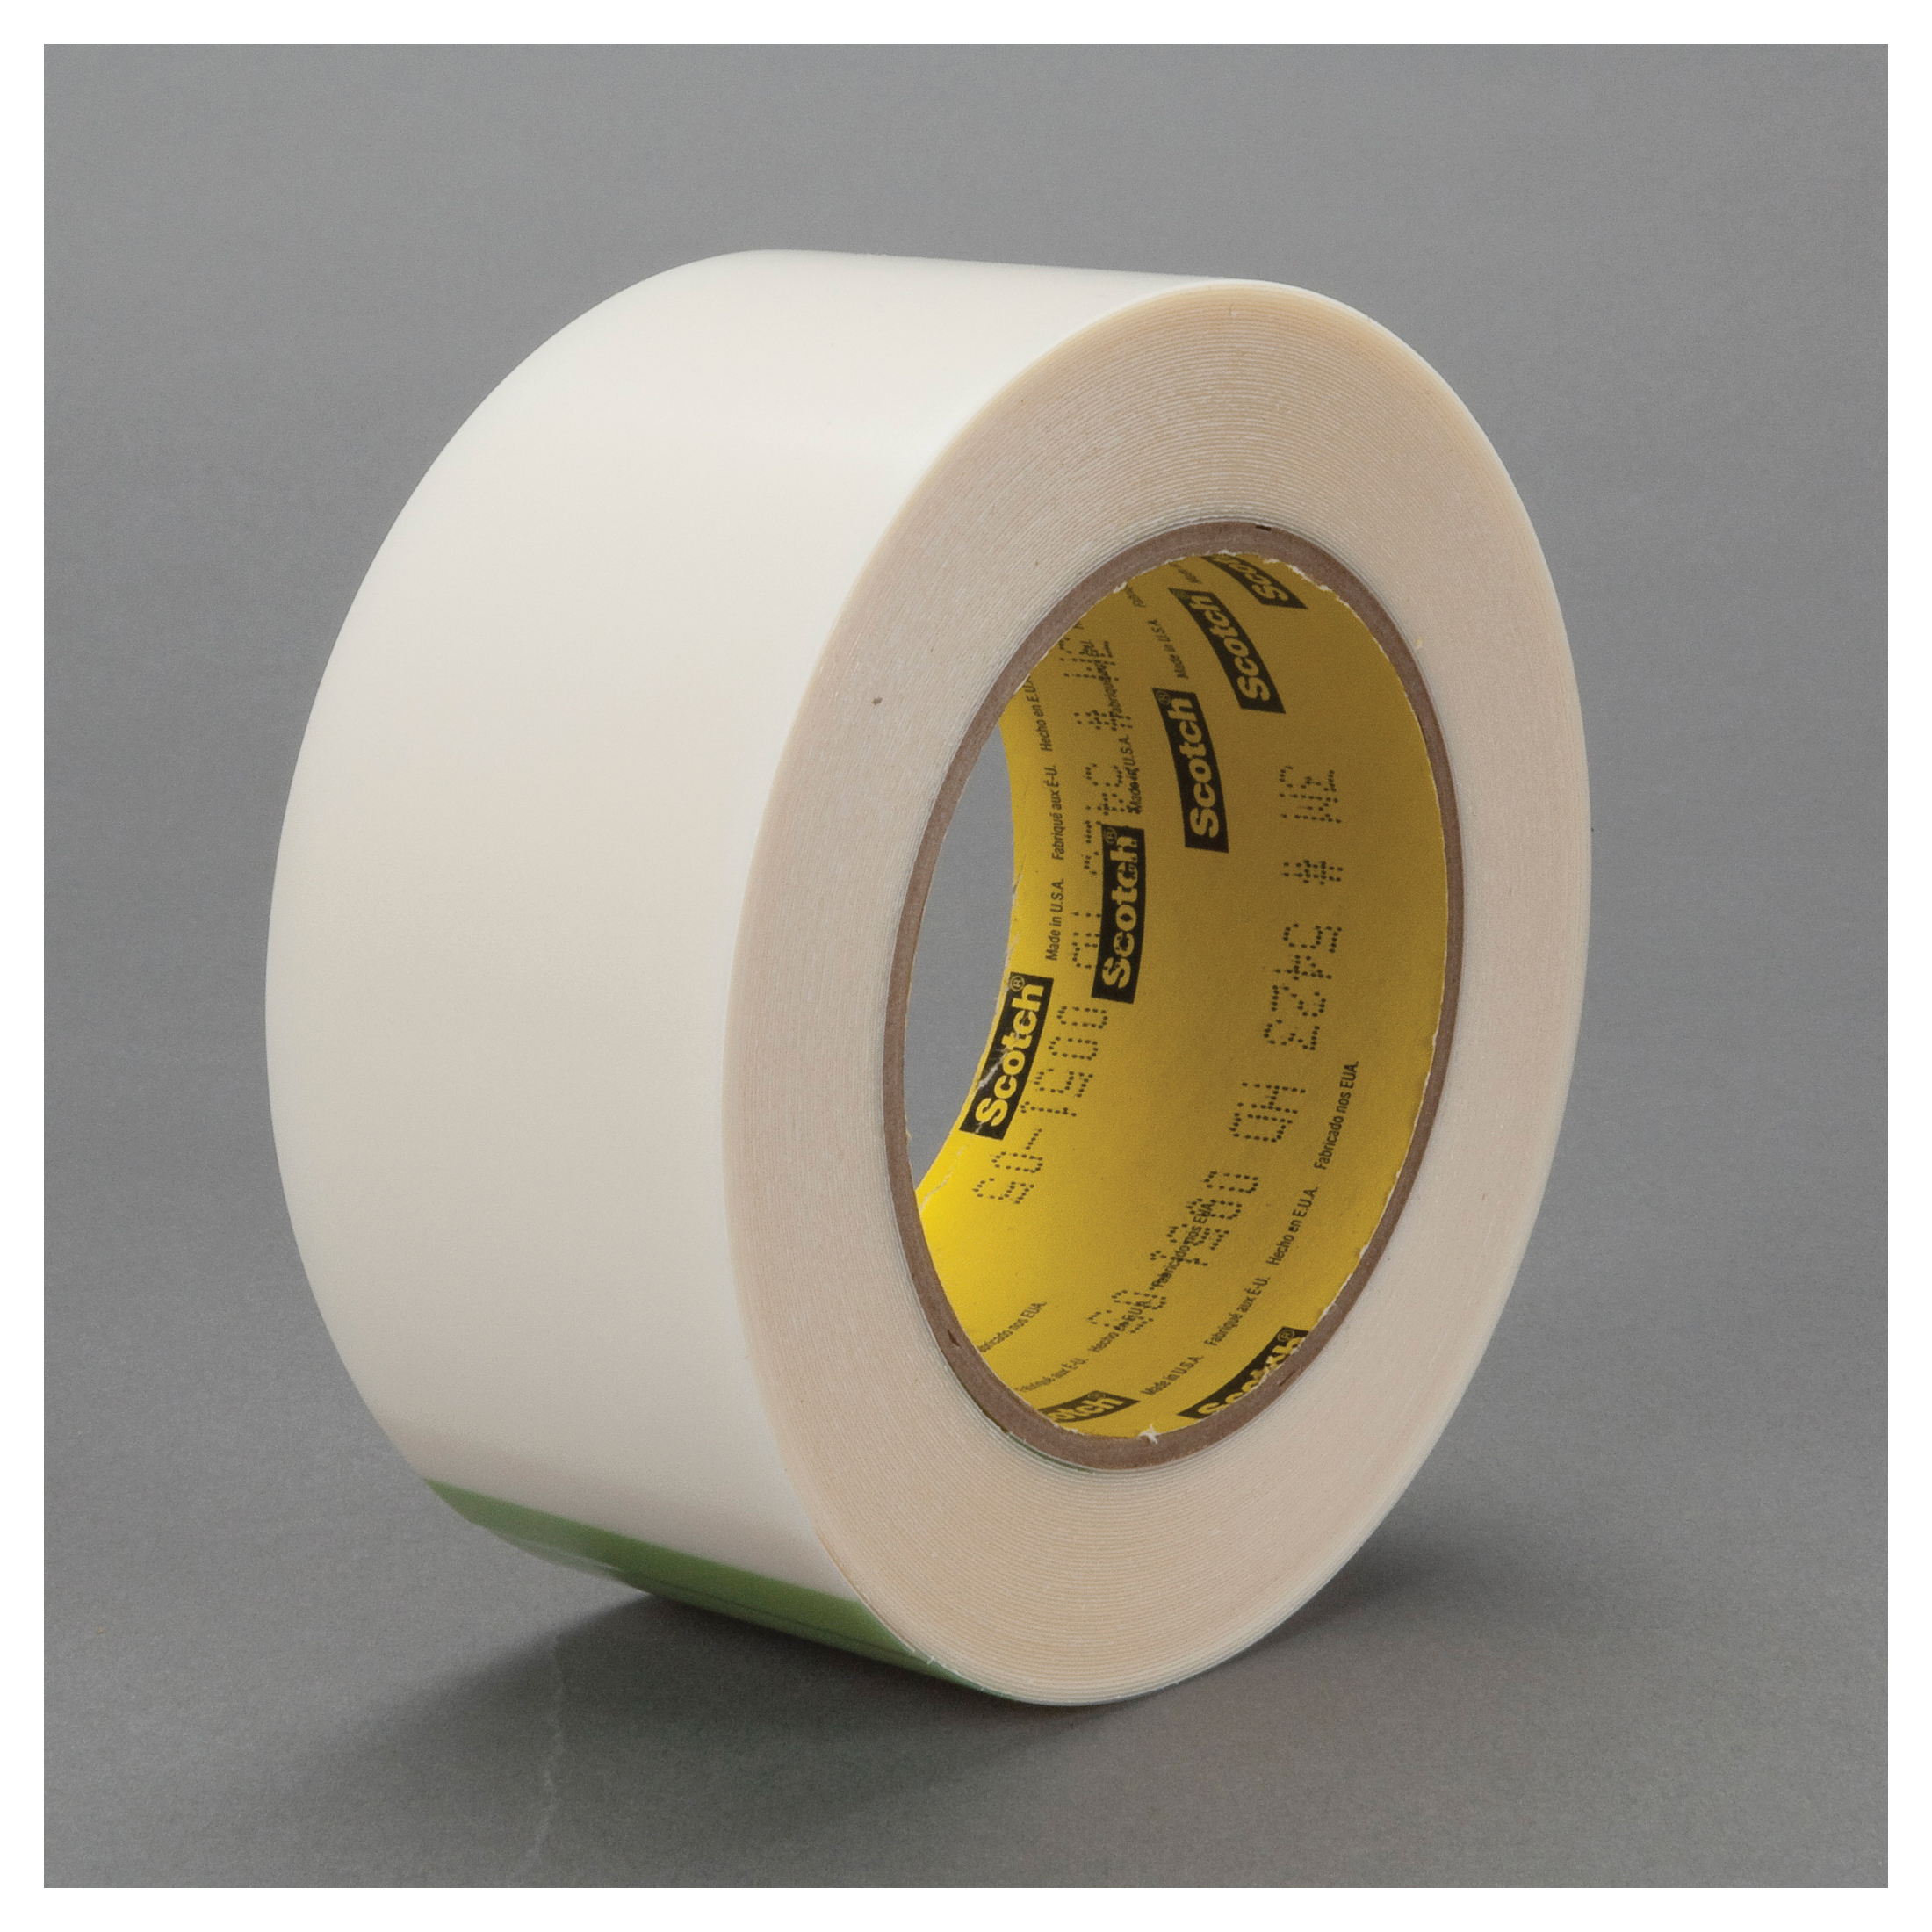 3M™ 021200-30110 Film Tape, 18 yd L x 5 in W, 11.7 mil THK, Rubber Adhesive, UHMWP Backing, Transparent